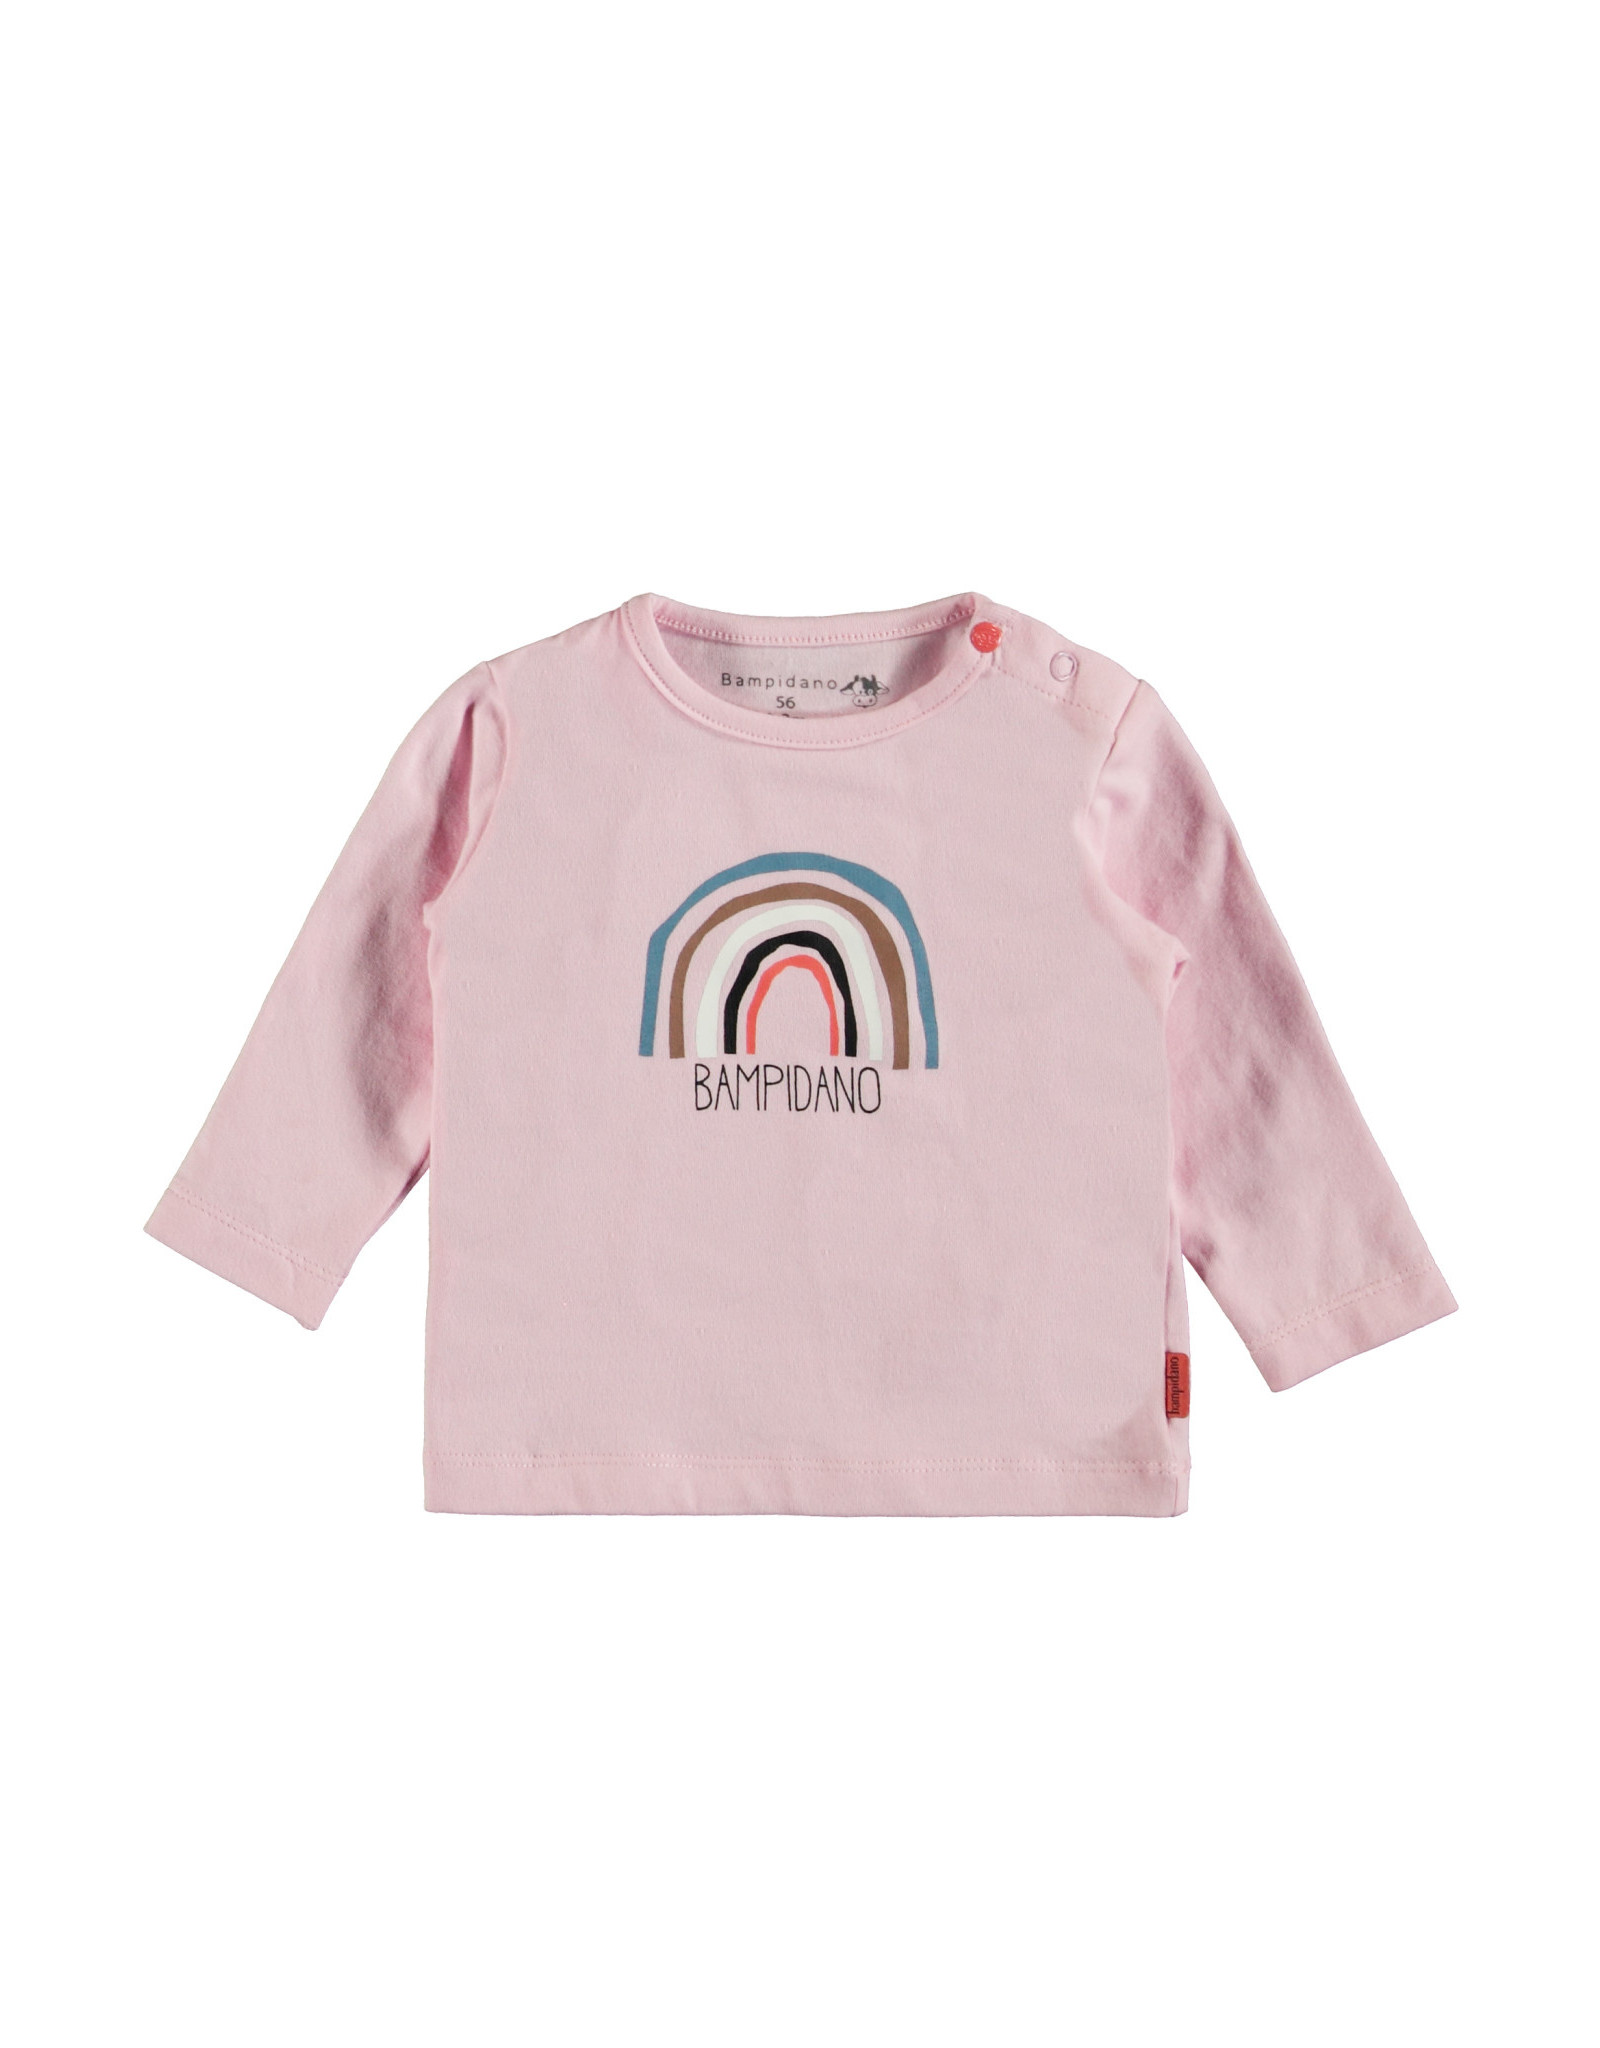 Bampidano Bampidano newborn shirt Fay print Sloth Light Pink